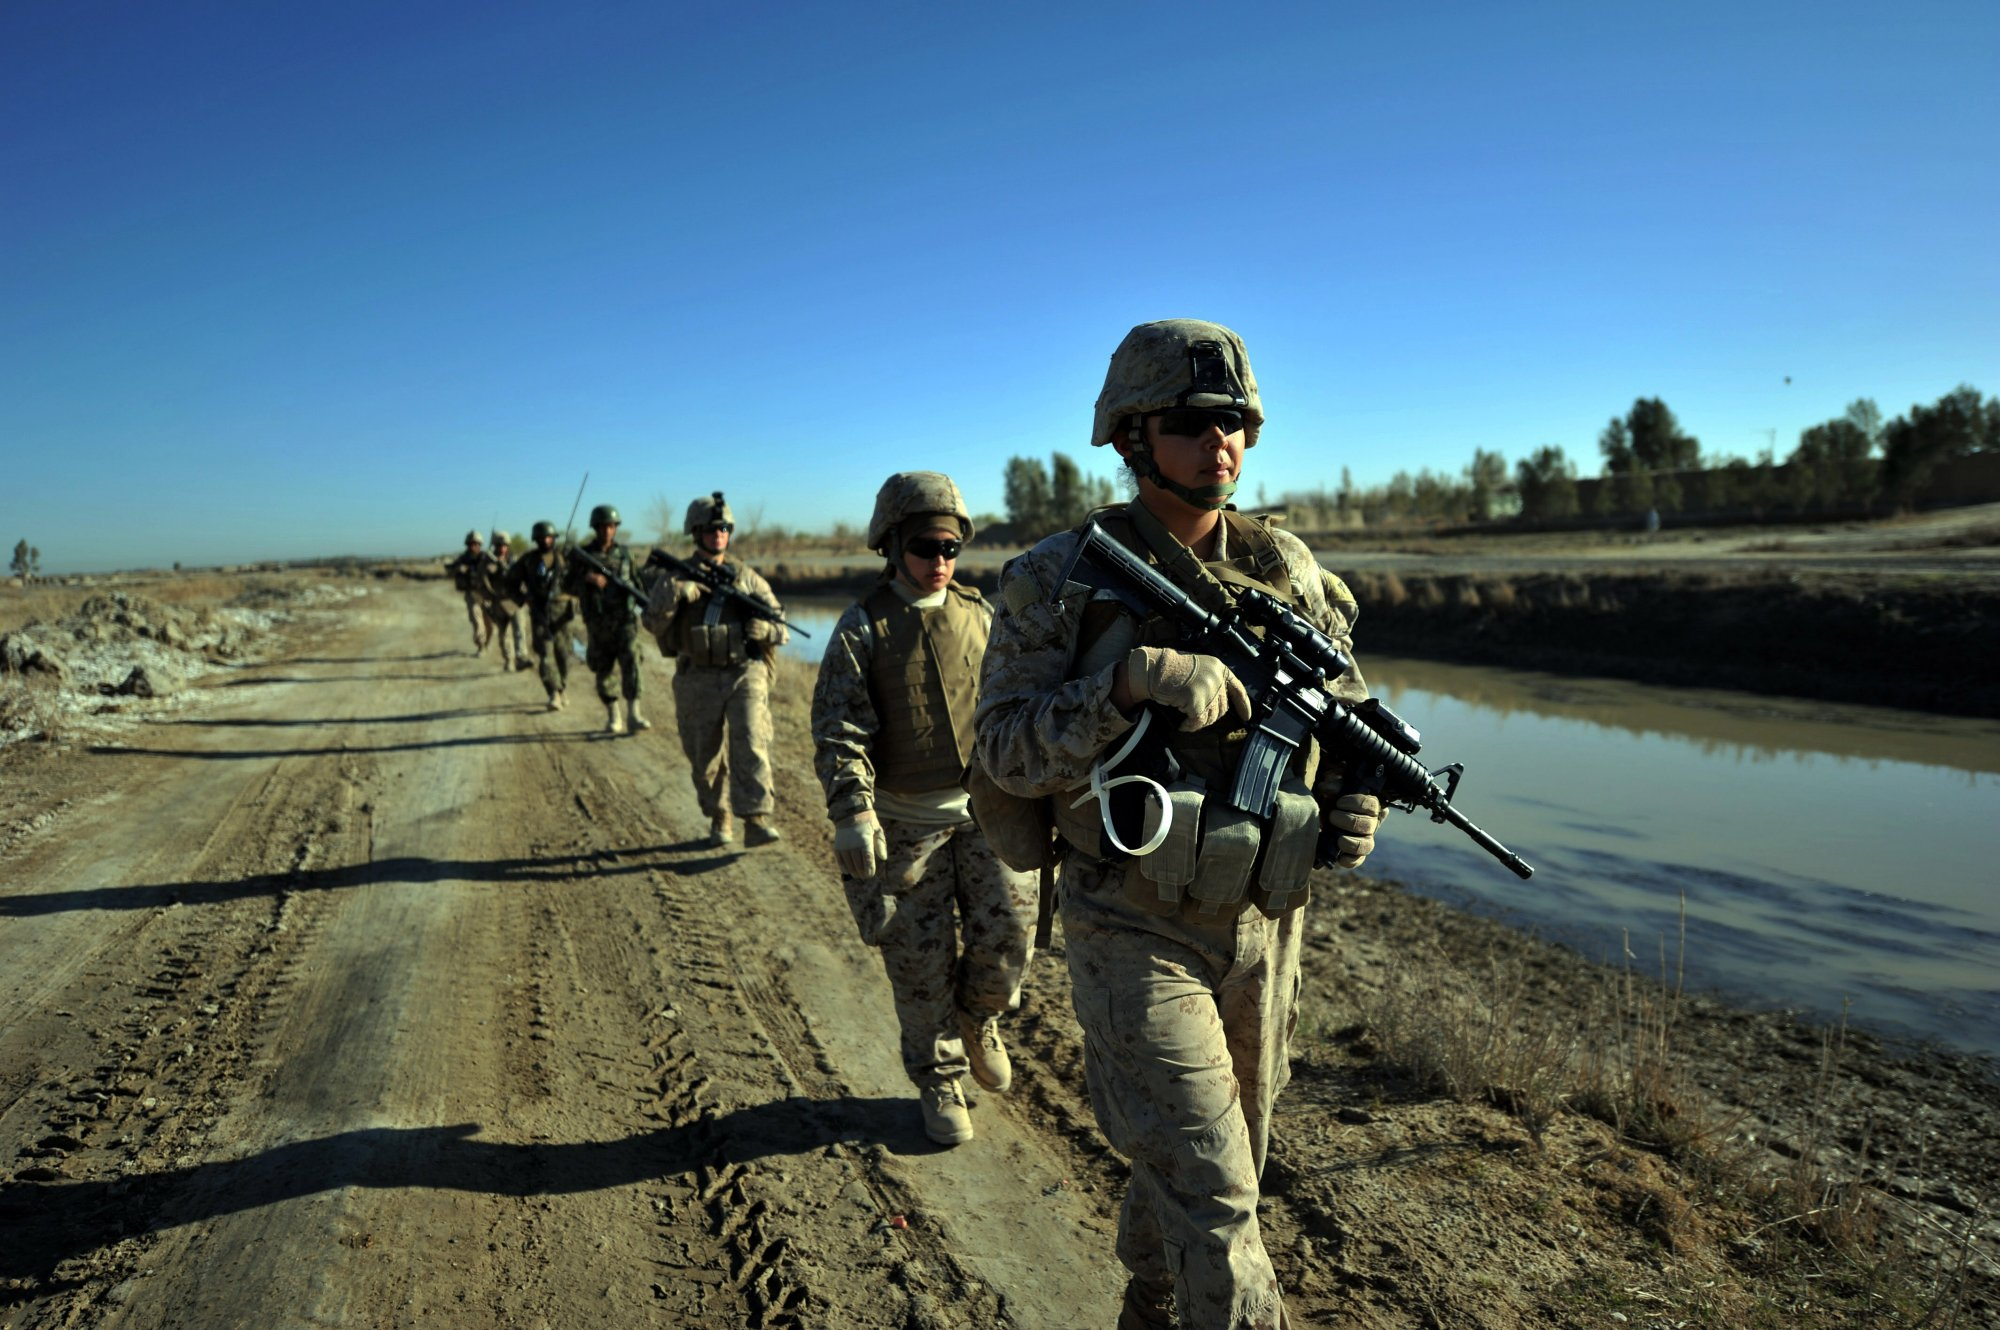 argumentative essay on women in combat 2013 majgen harold w chase prize essay contest: 1st place jump to navigation mca&f semper fi sponsor my argument has little to do with whether women.